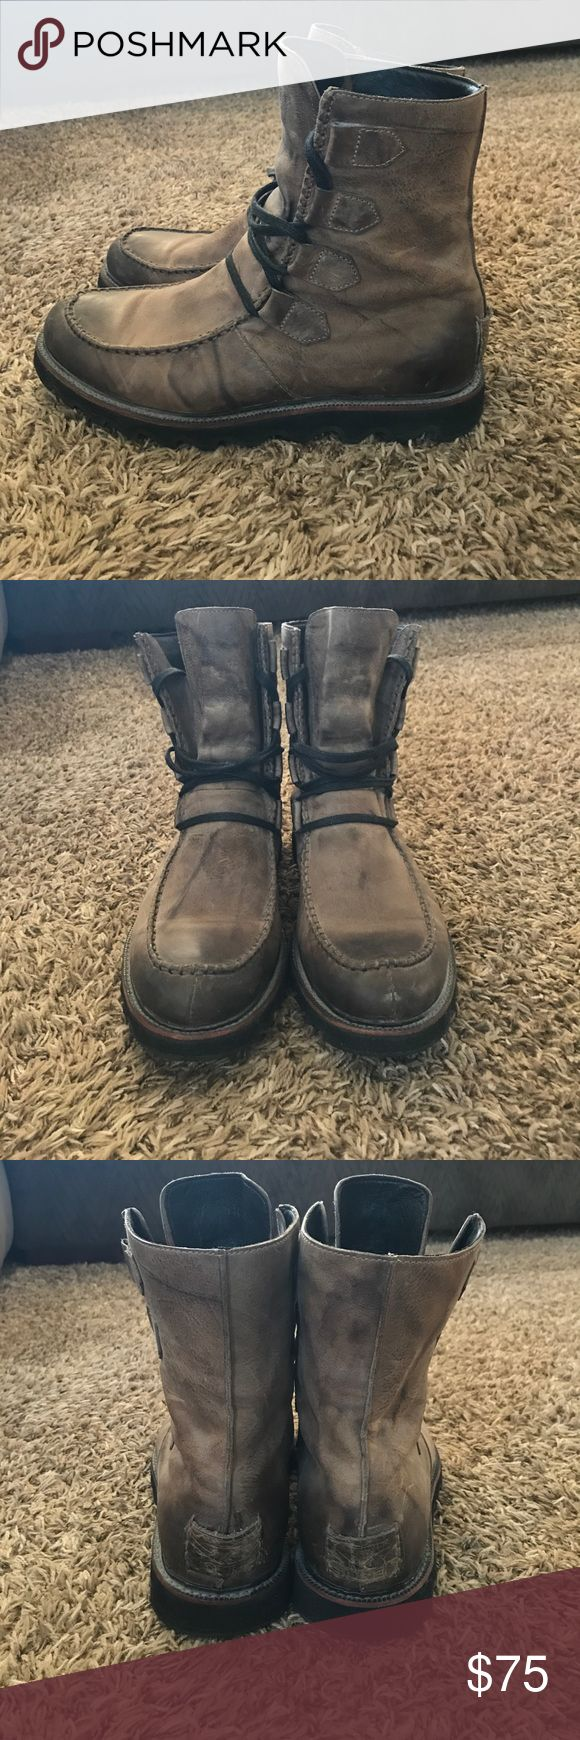 Men's Sorel Boots Men's Size 11 distressed taupe lace up boots. Only worn a couple of times, in perfect condition! Sorel Shoes